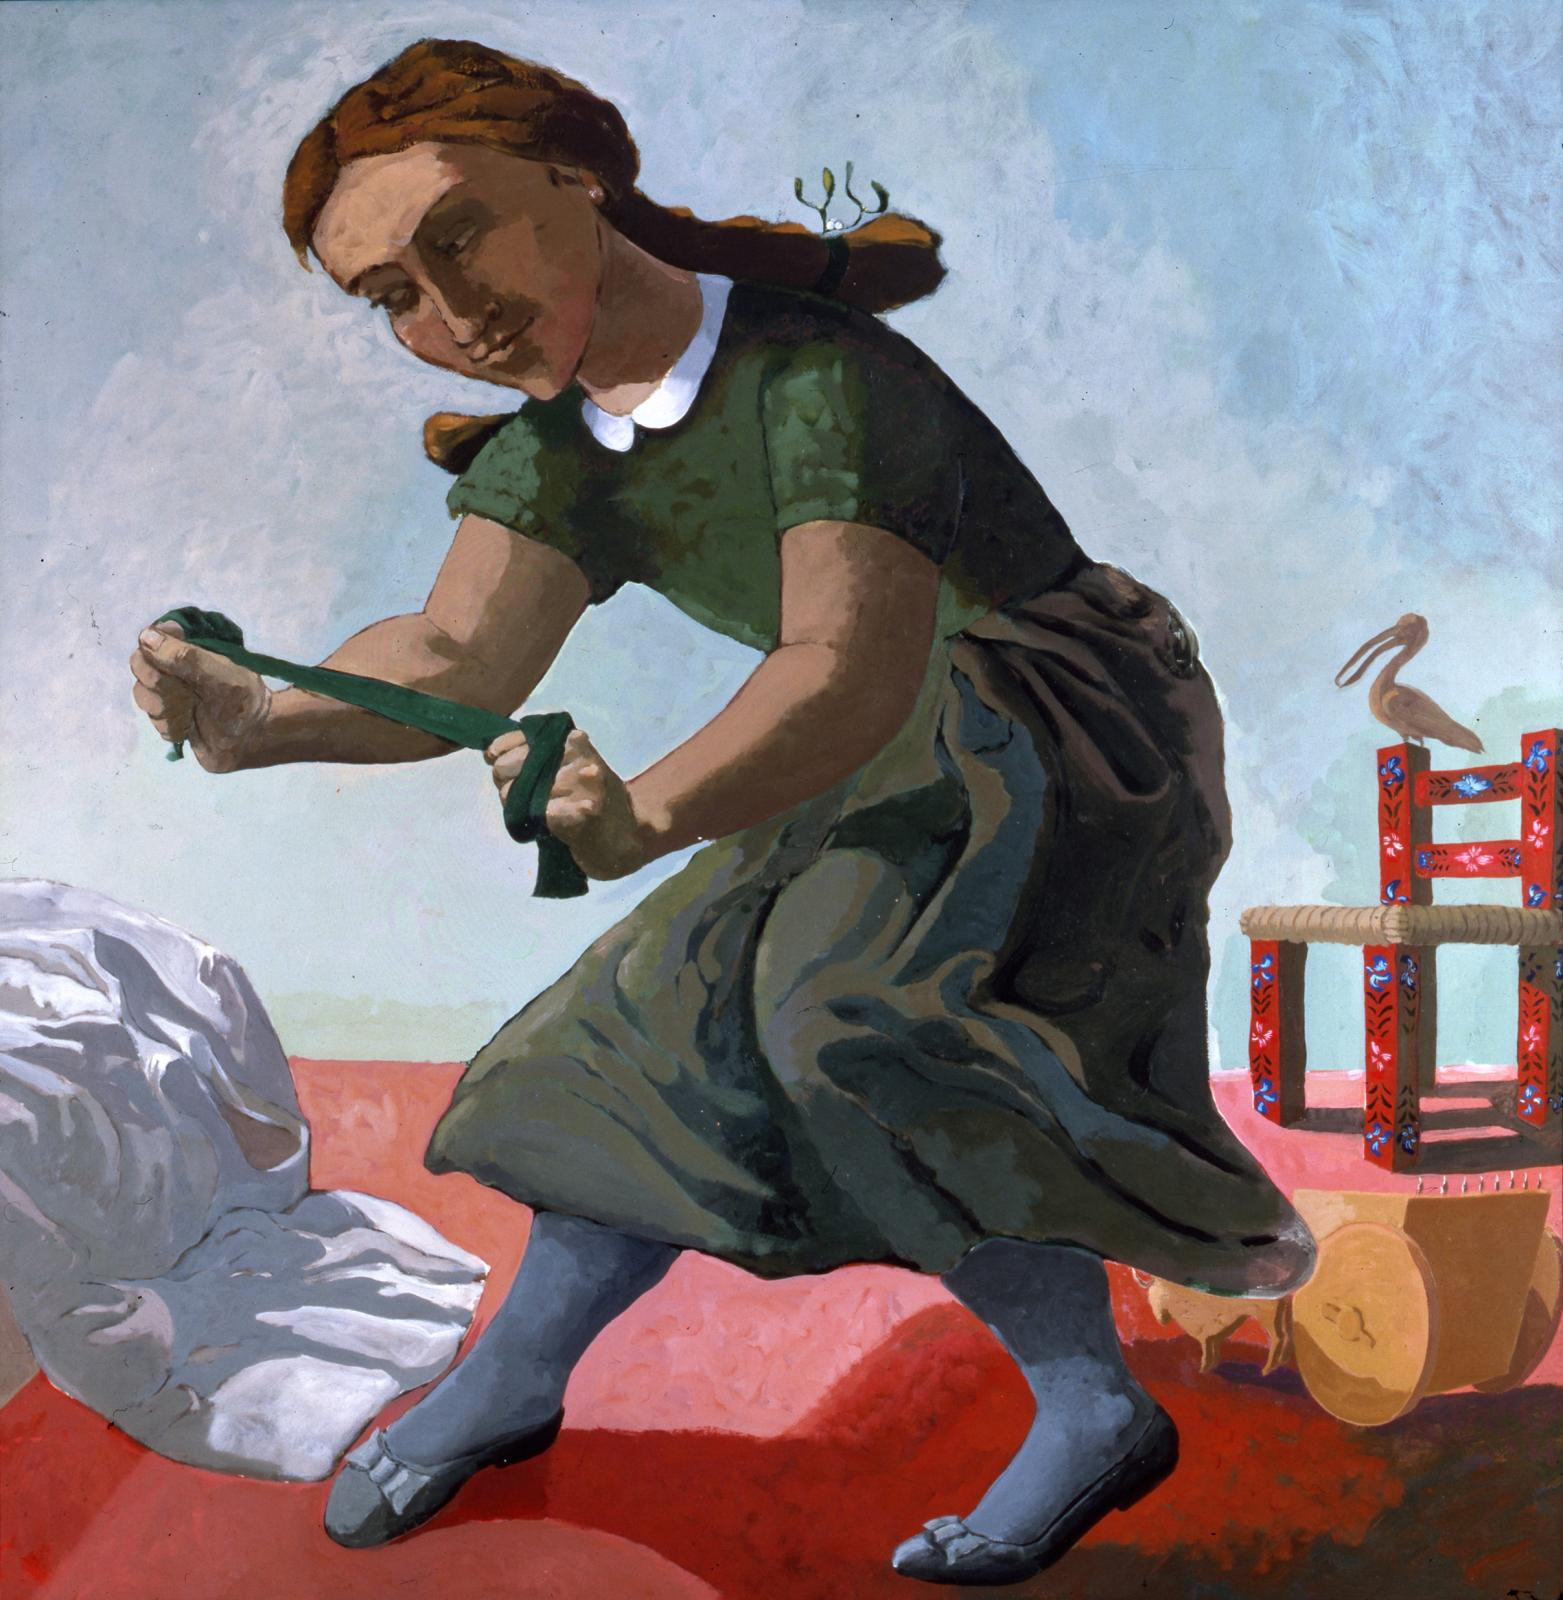 Paula Rego (b.1935), The Little Murderess, 1987. Private Collection, UK© Paula Rego